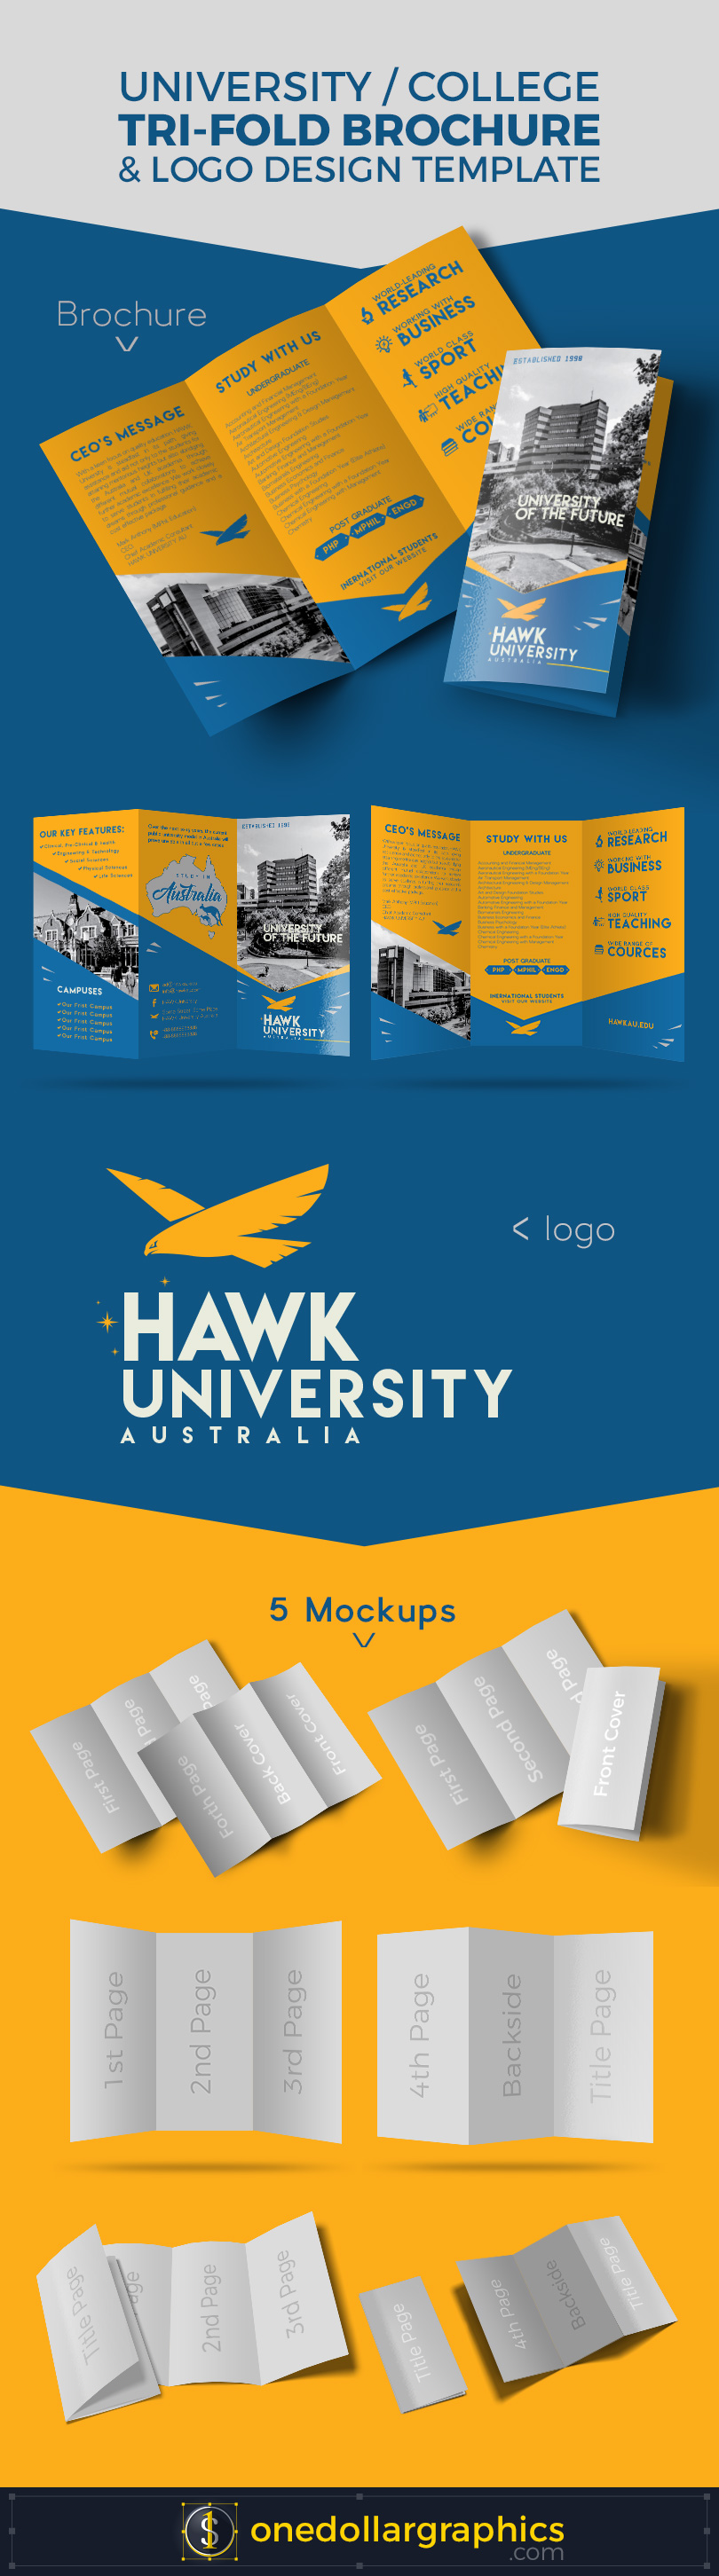 College-University-Tri-Fold-Brochure-Design-&-Logo-Template